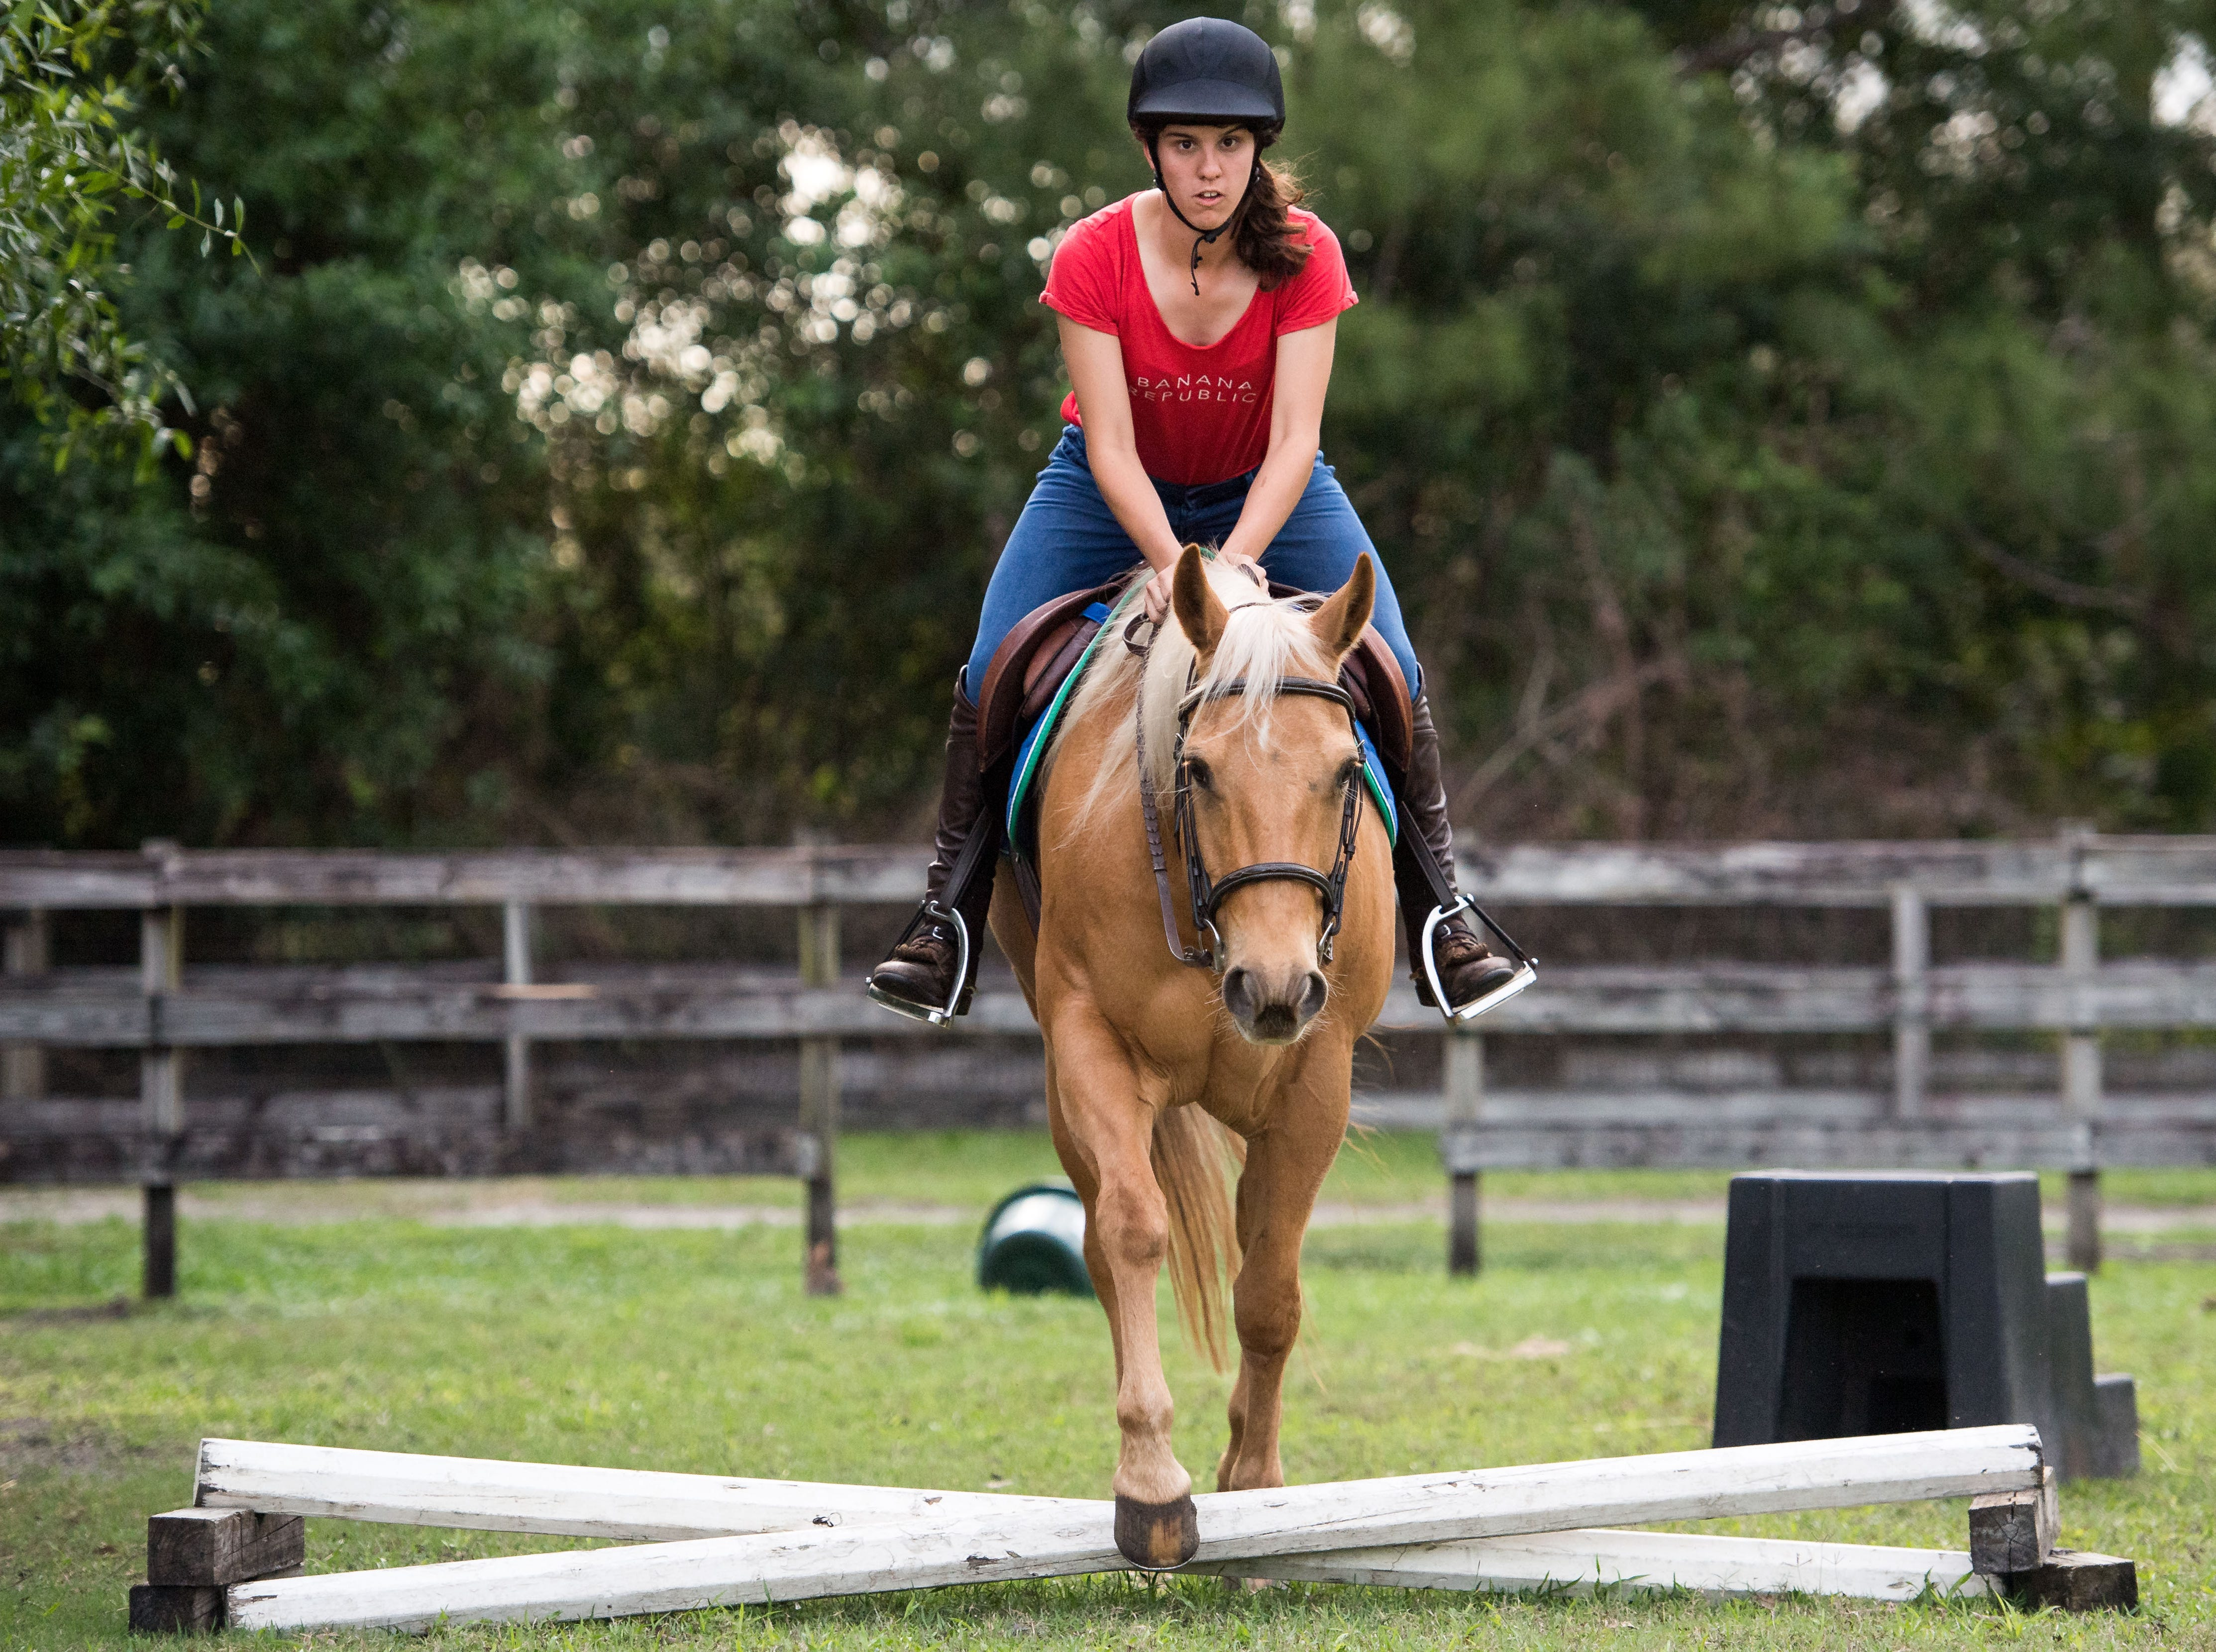 """Cori Davis, an equestrian from Palm City, rides Jaye, one of her family's horses under the watch of riding instructor Patty Nelson at Davis' home March 1, 2019, in Palm City. Davis will be traveling to Abu Dhabi, United Arab Emirates, to compete in the 2019 Special Olympics World Games, which begin March 14. """"An Emirates family is donating all the horses (for the competition),"""" Cori's mother, Jacque Lewis, said, """"so Patty's been having her on a bunch of different horses."""""""